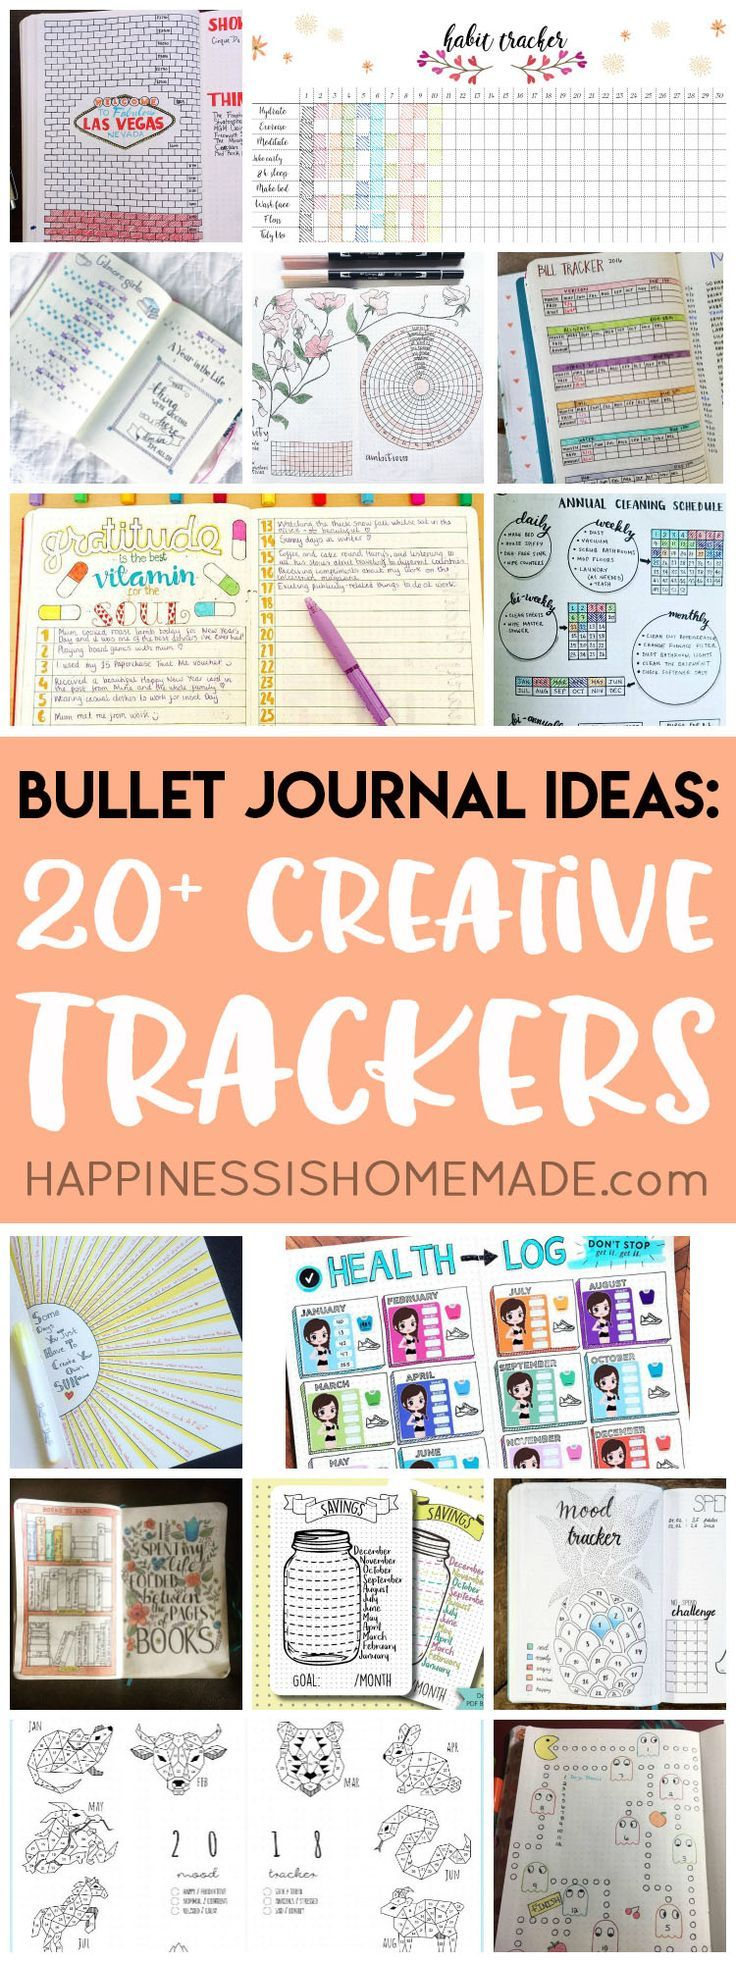 Looking for bullet journal ideas? These creative bullet journal tracker charts will help you get organized, save money, lose weight, and boost your mood! via @hiHomemadeBlog